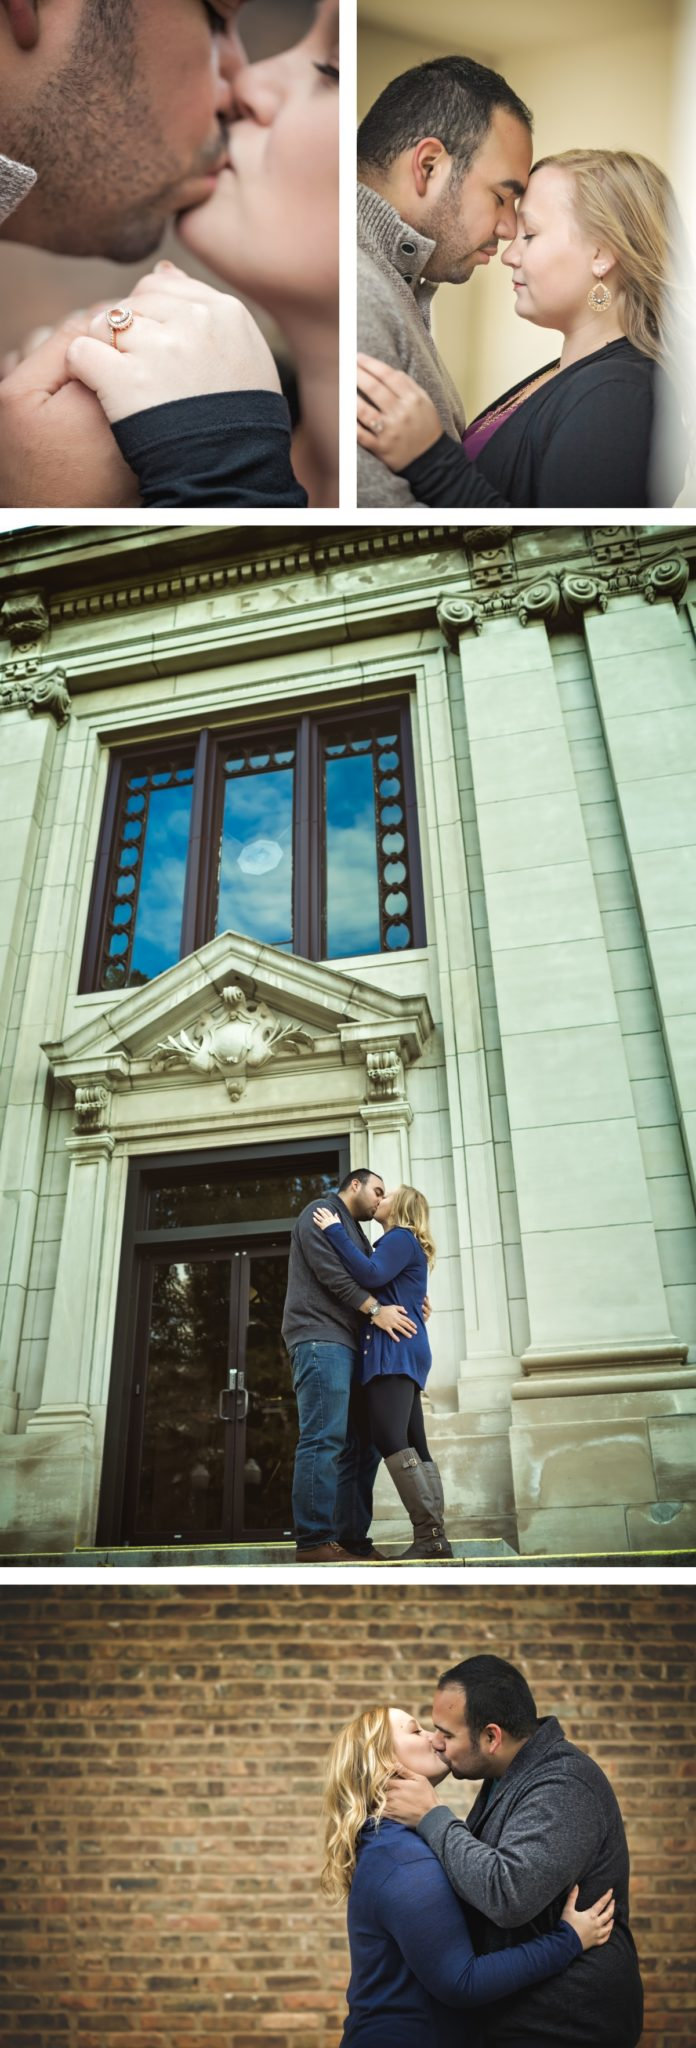 Pink Spruce Photography Best of Engagement Photos for 2017 - Kayla and Sergio